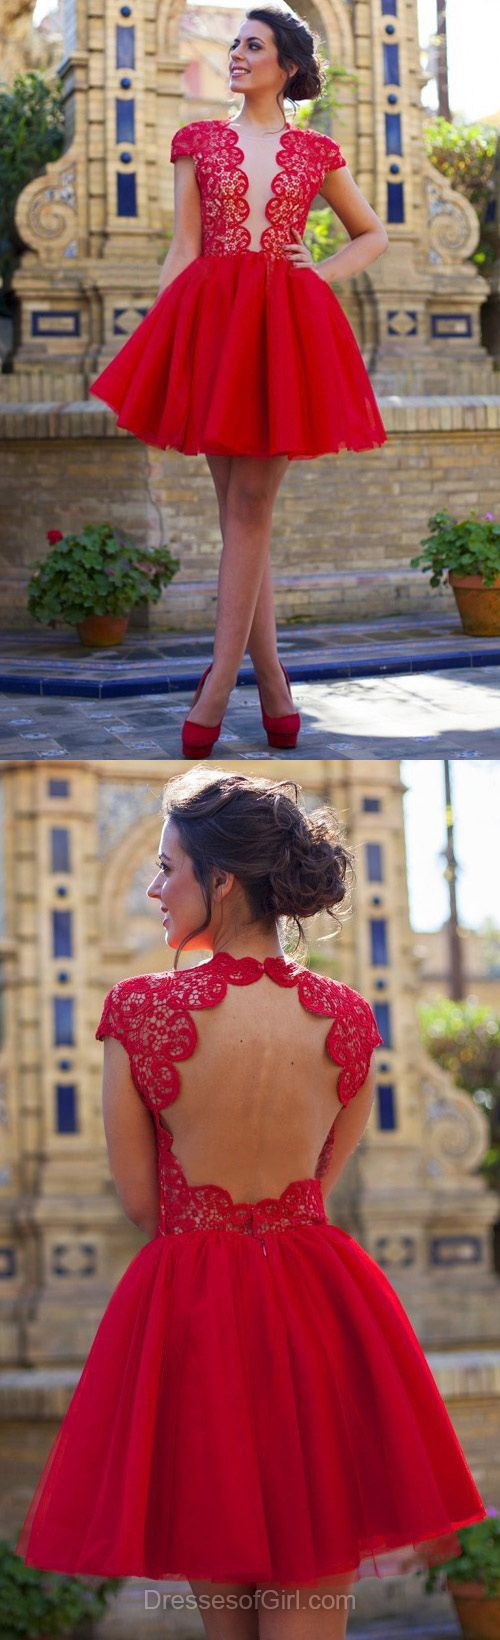 Red prom dresses short prom dress lace homecoming dress backless